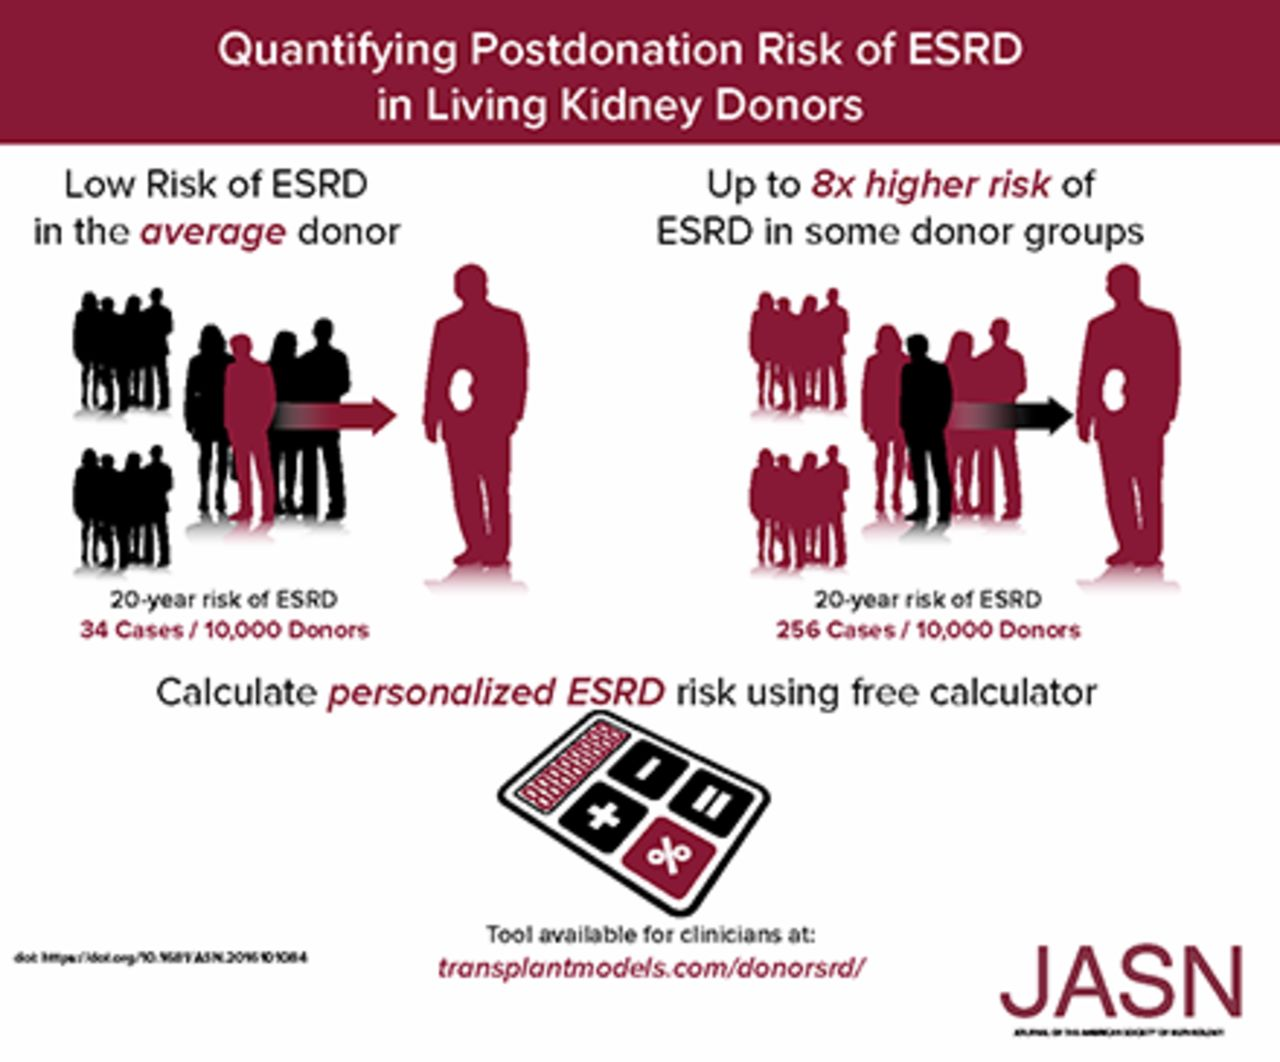 Quantifying Postdonation Risk of ESRD in Living Kidney